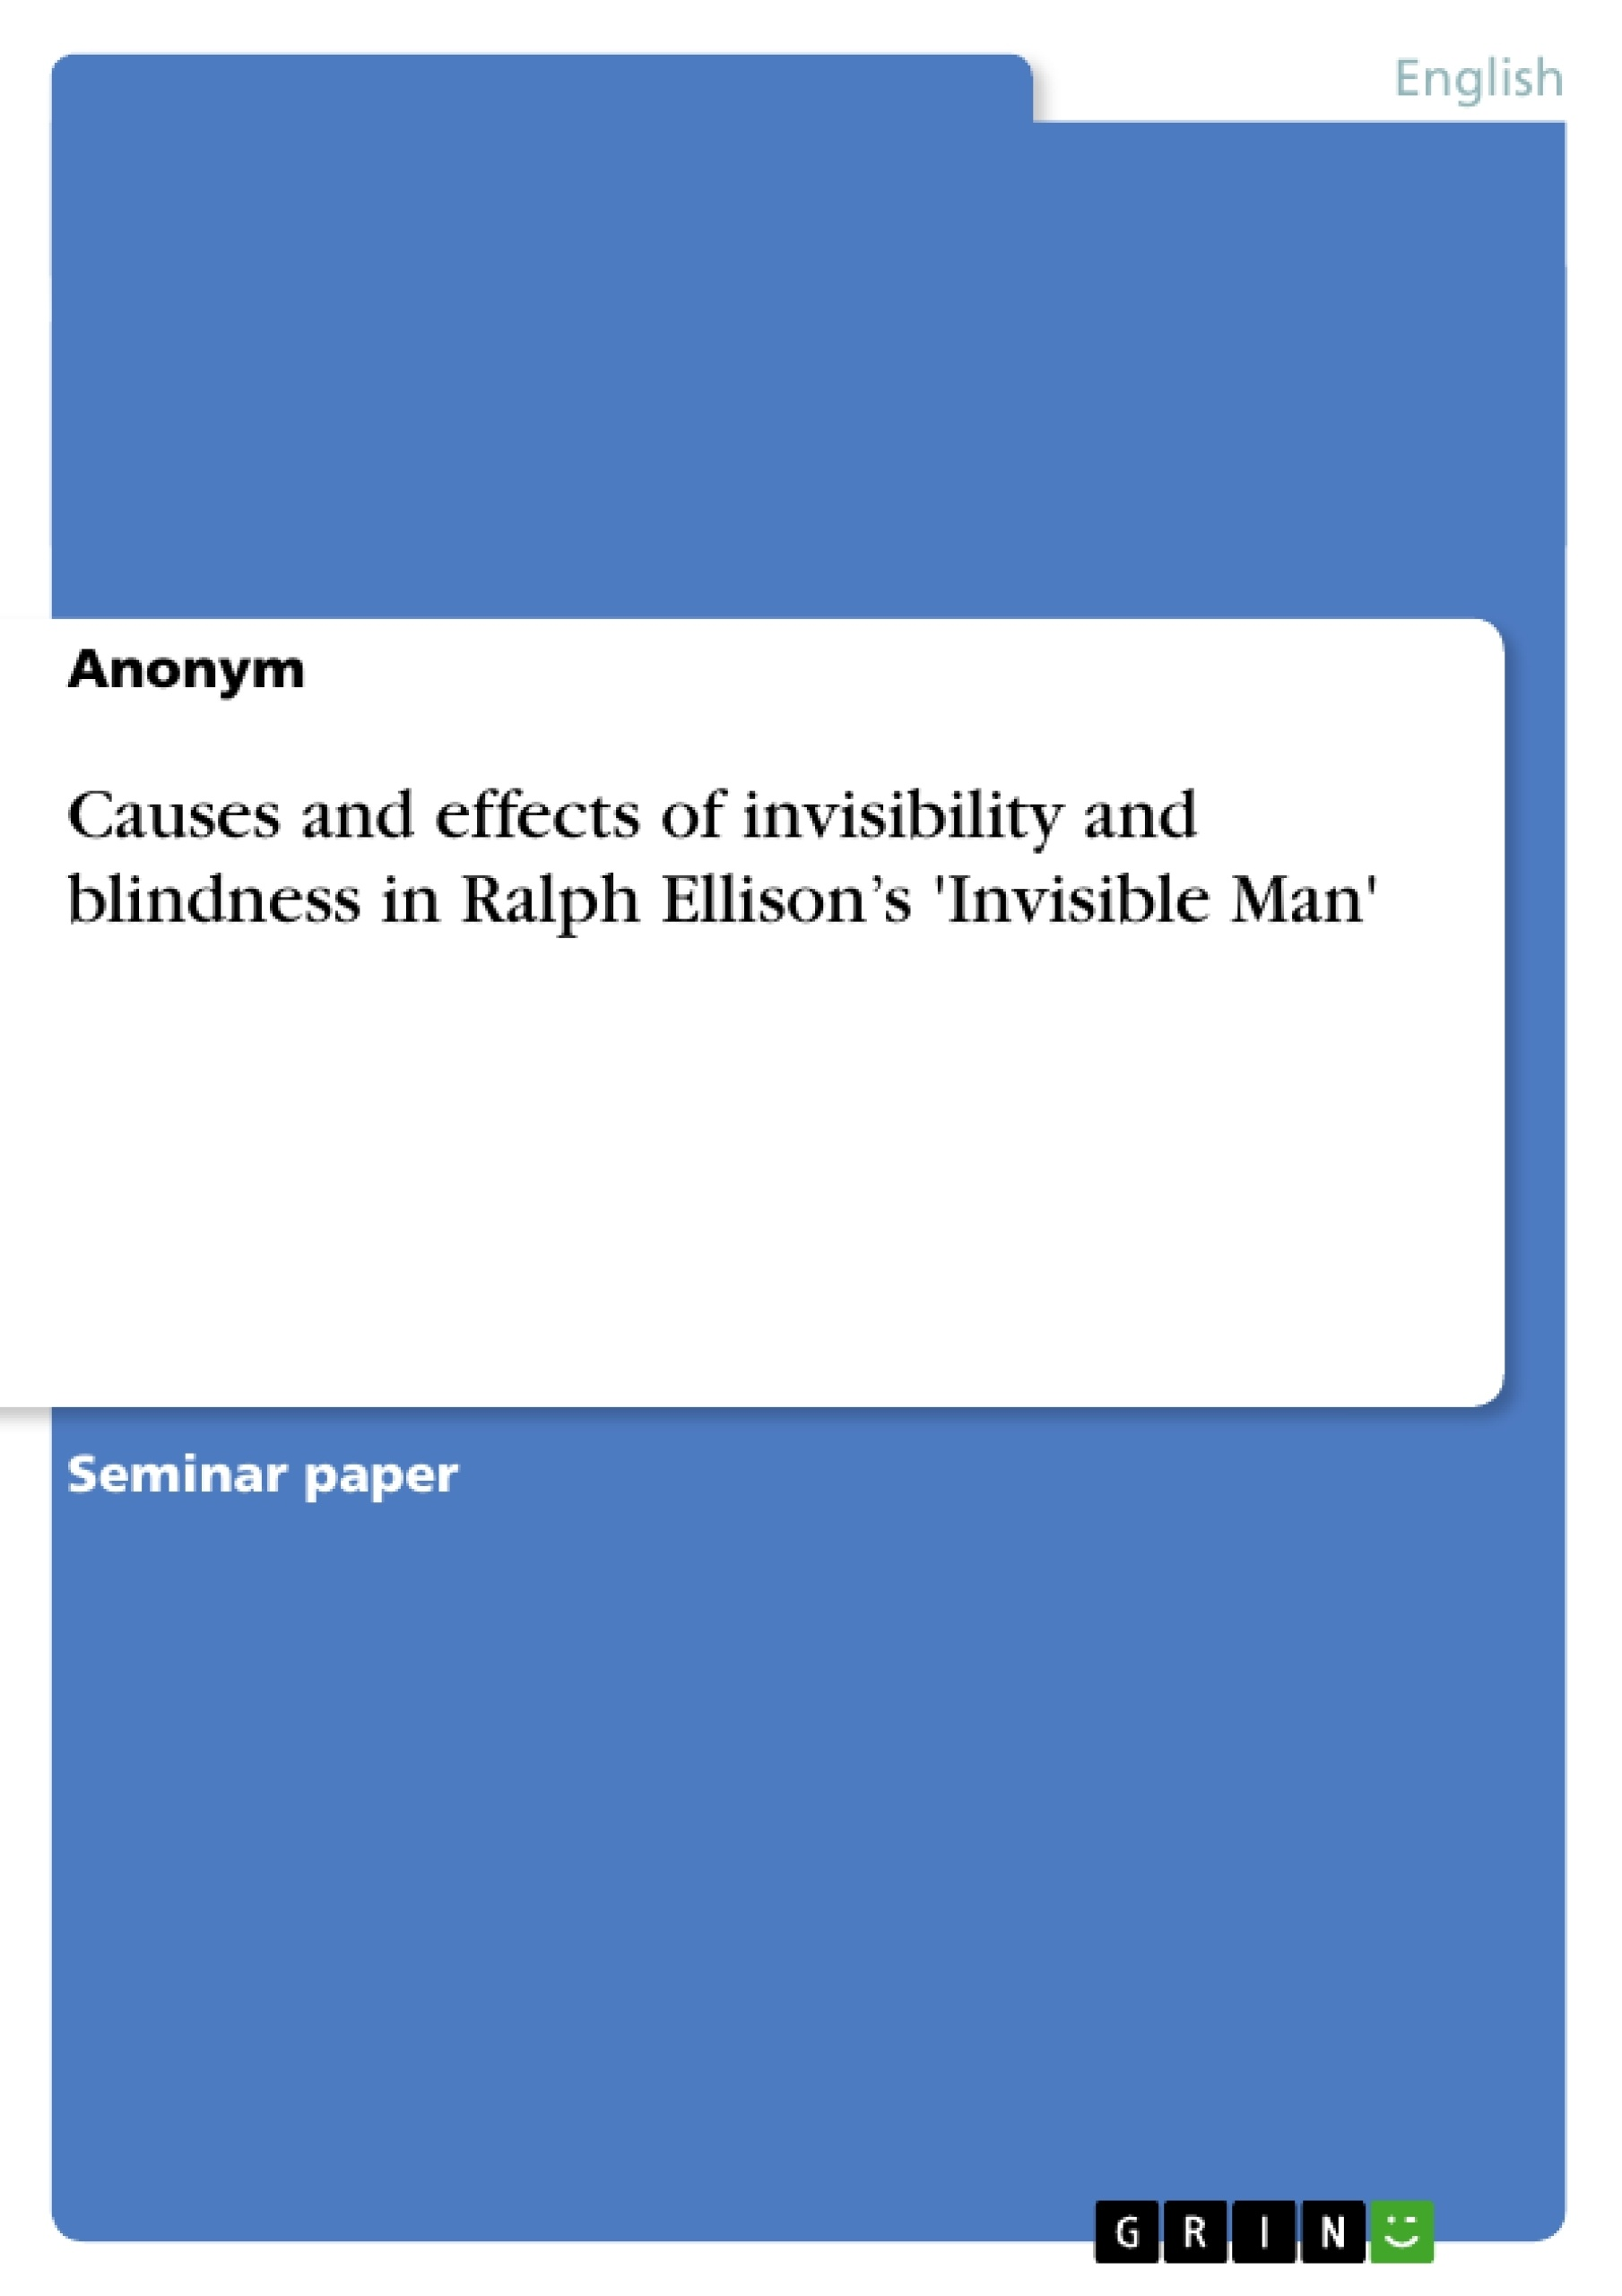 blindness essay irin river blindness photo essay causes and  causes and effects of invisibility and blindness in ralph upload your own papers earn money and